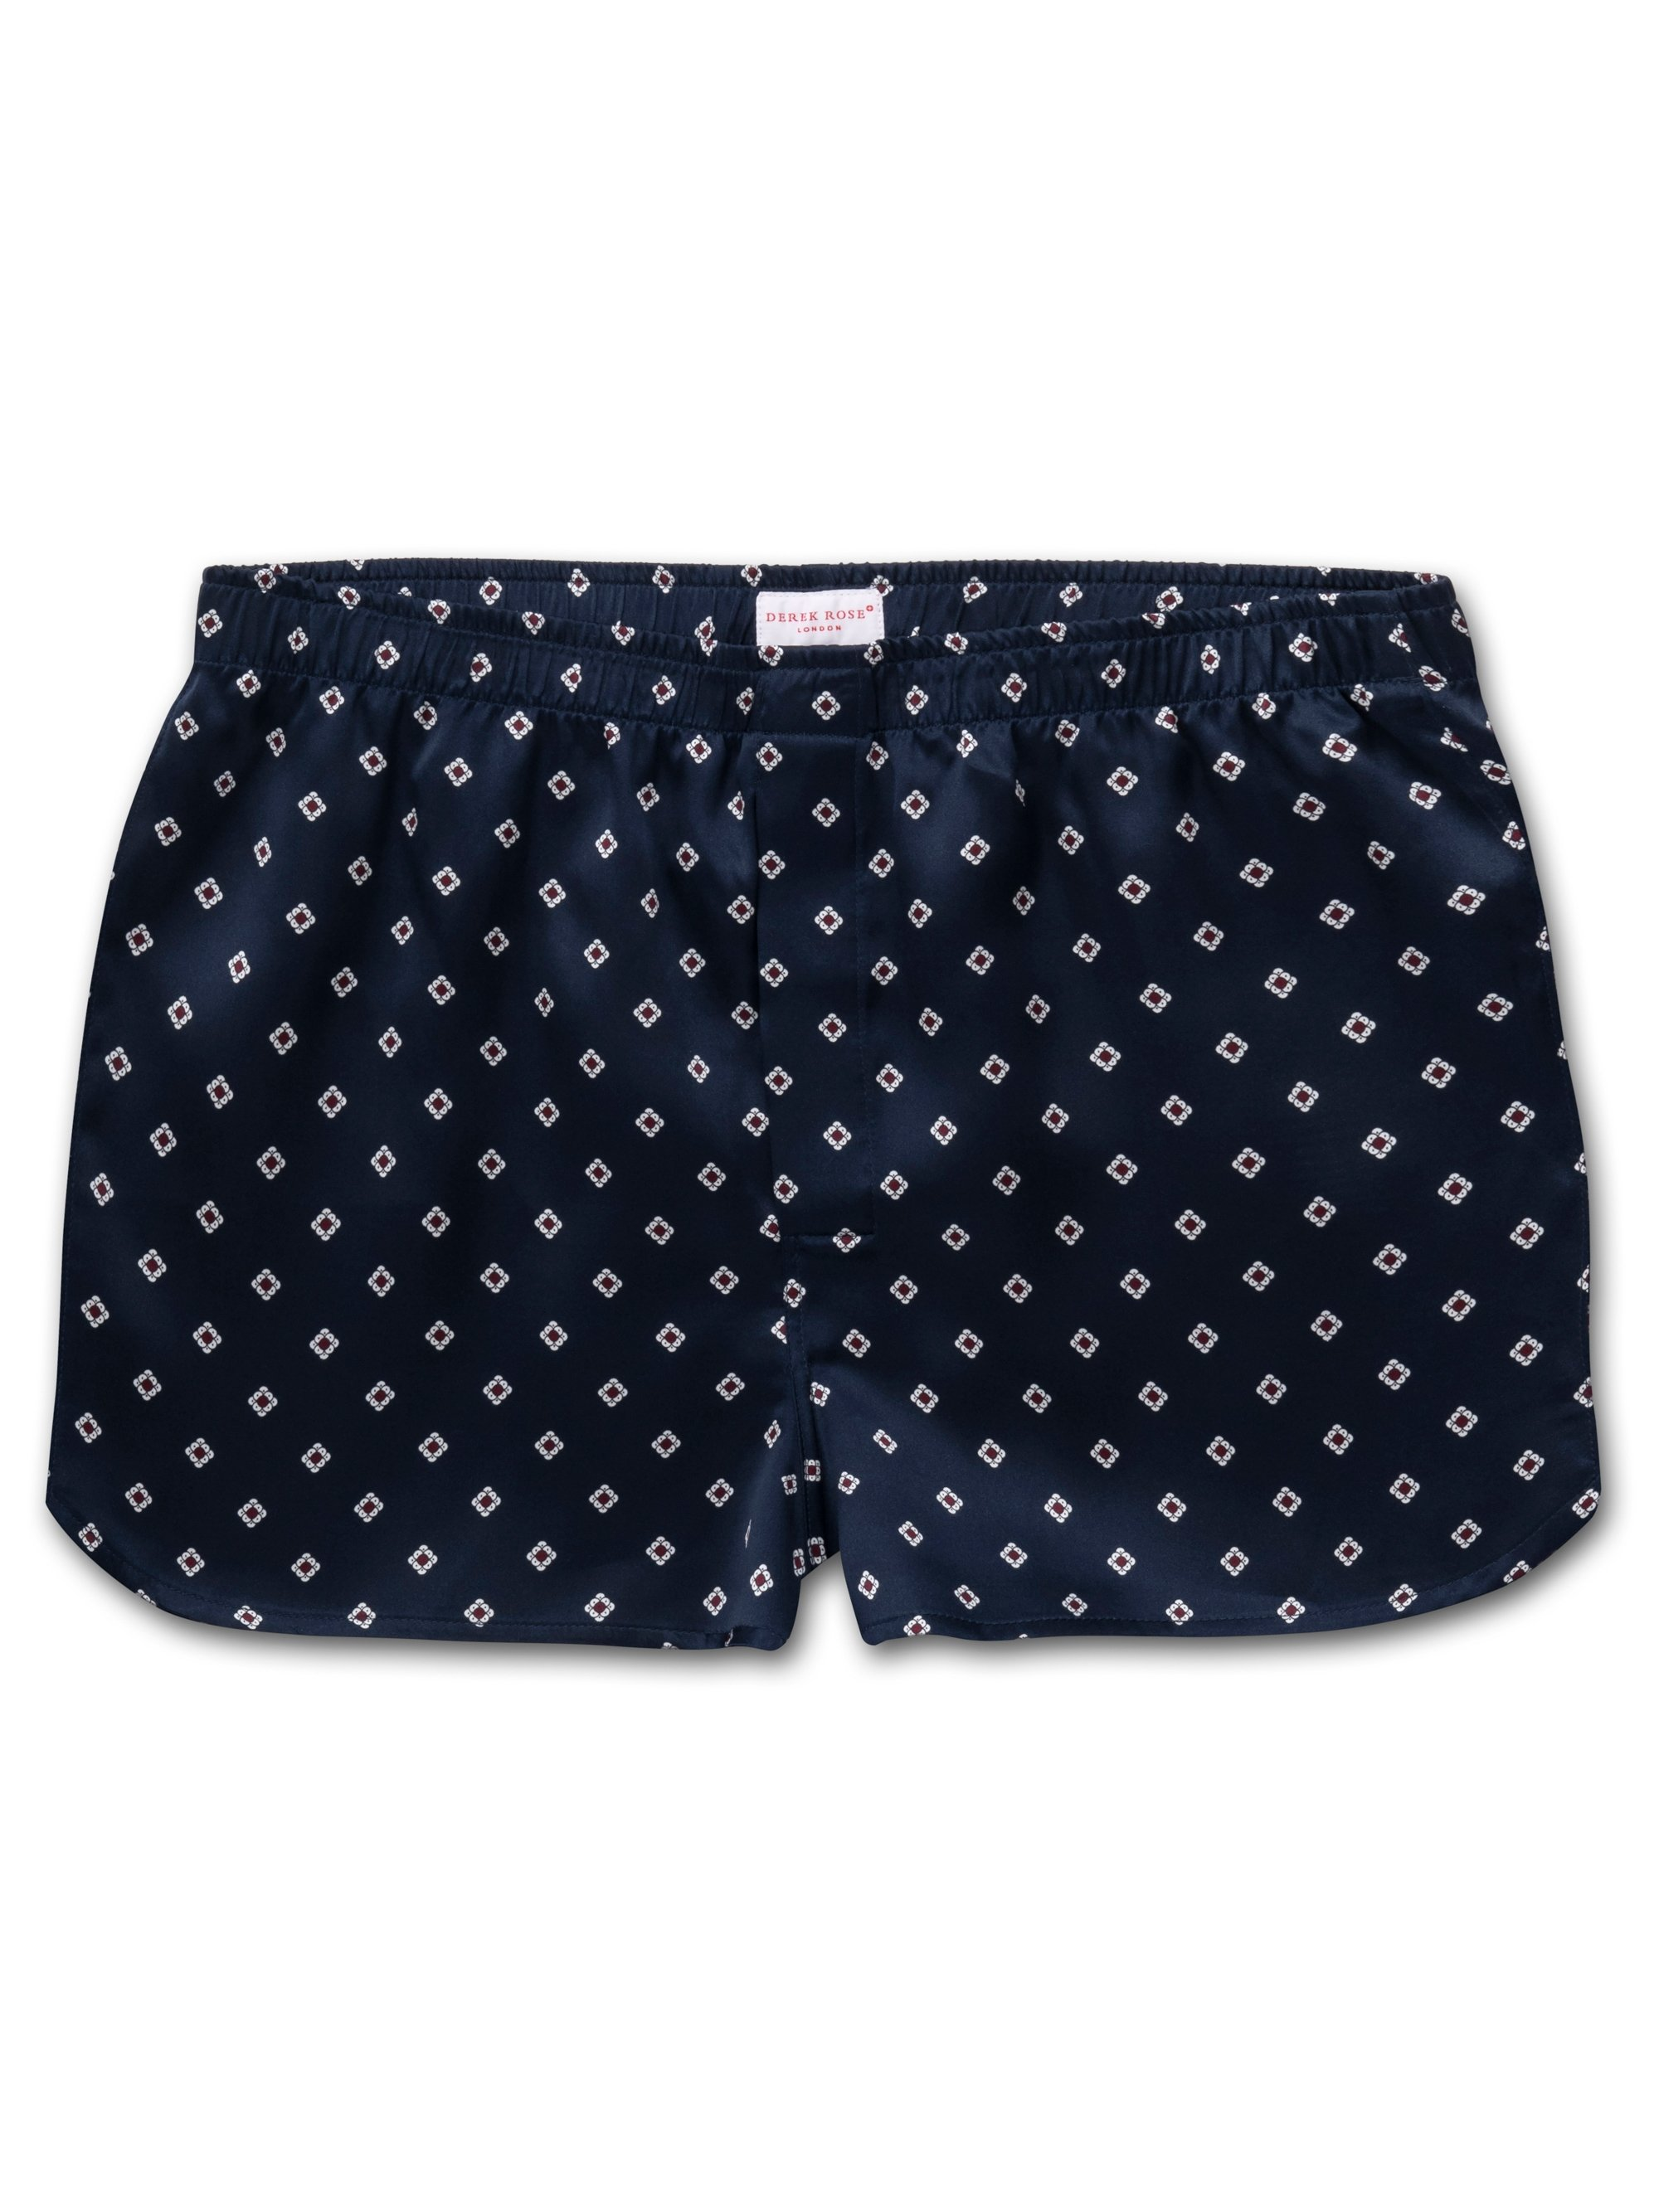 Men's Modern Fit Boxer Shorts Brindisi 58 Pure Silk Satin Navy